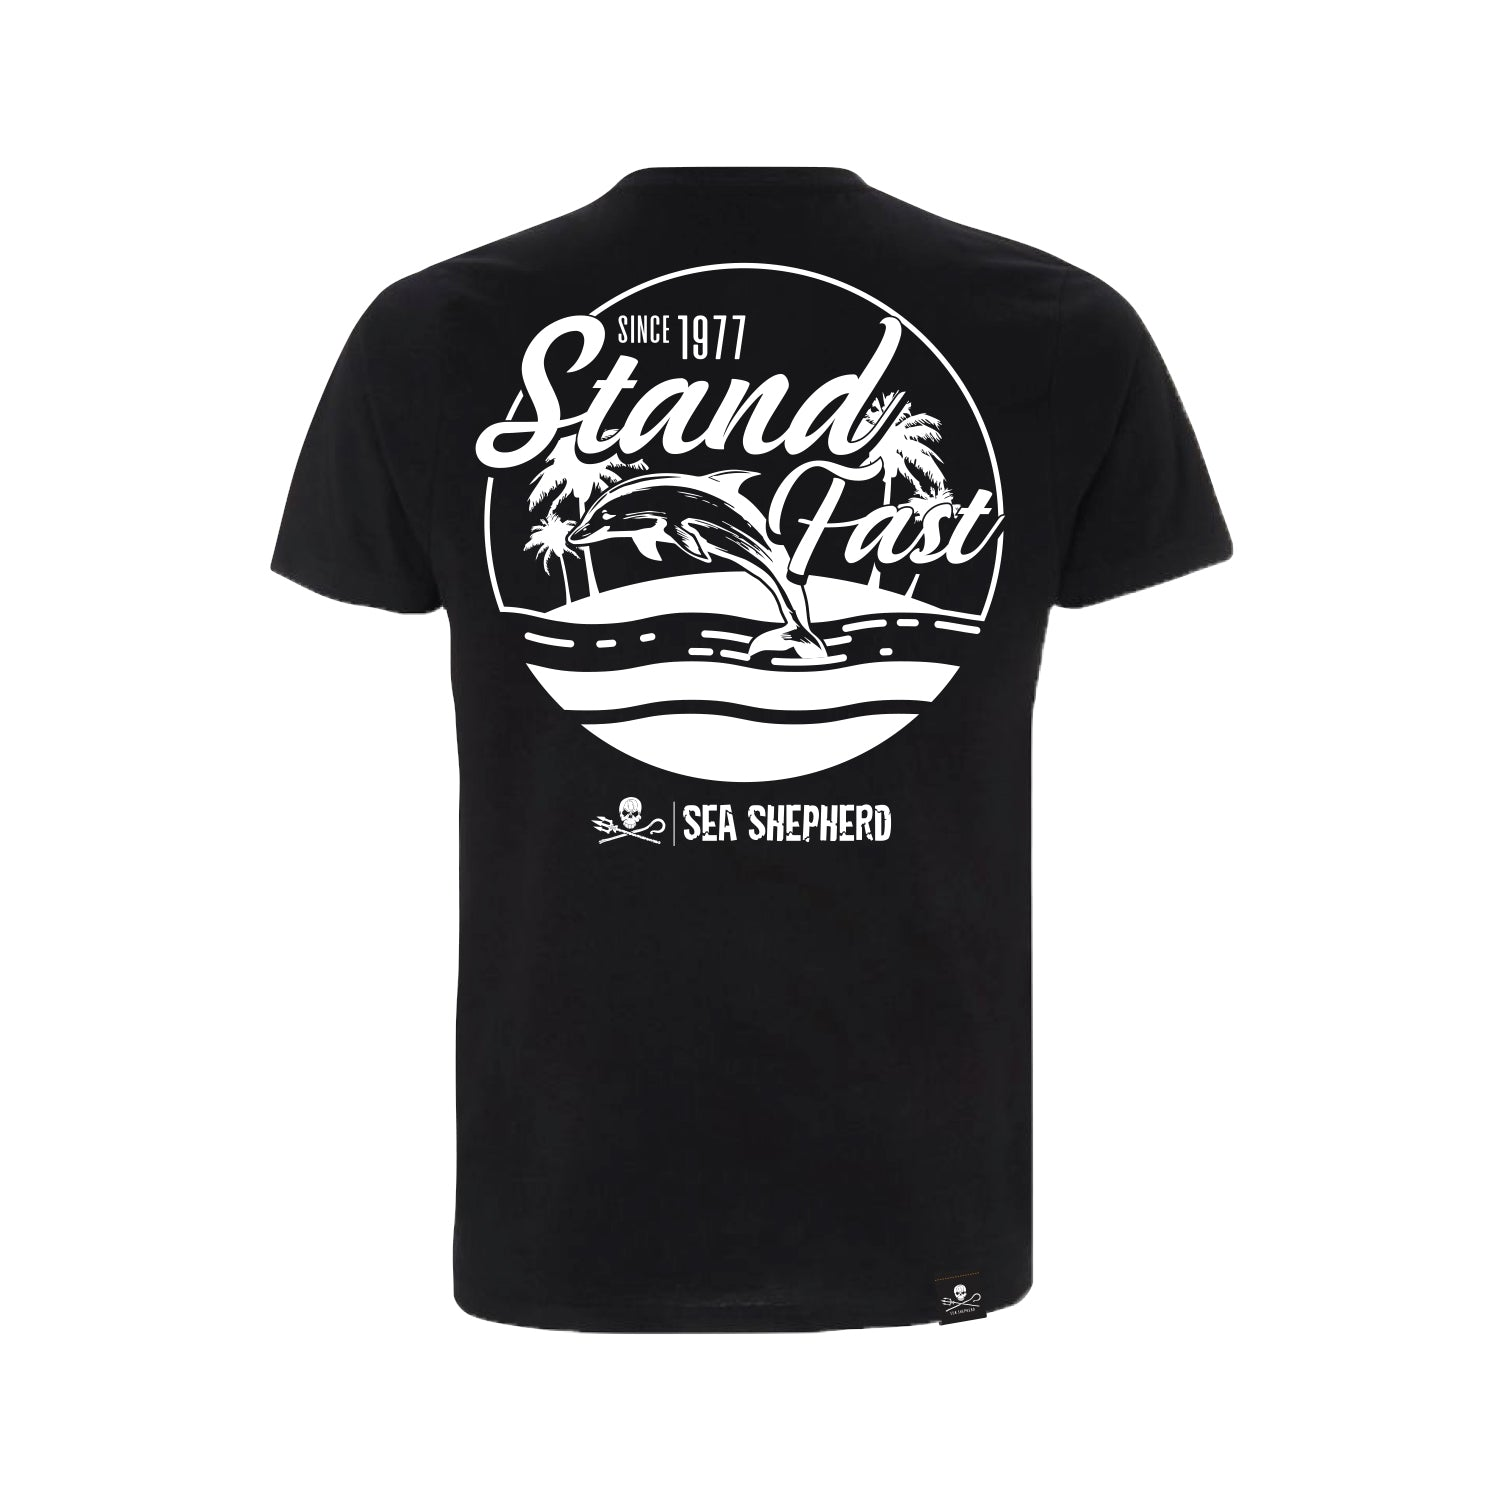 Sea Shepherd Stand Fast - Island Time 100% Organic Cotton Jersey - Black Tee